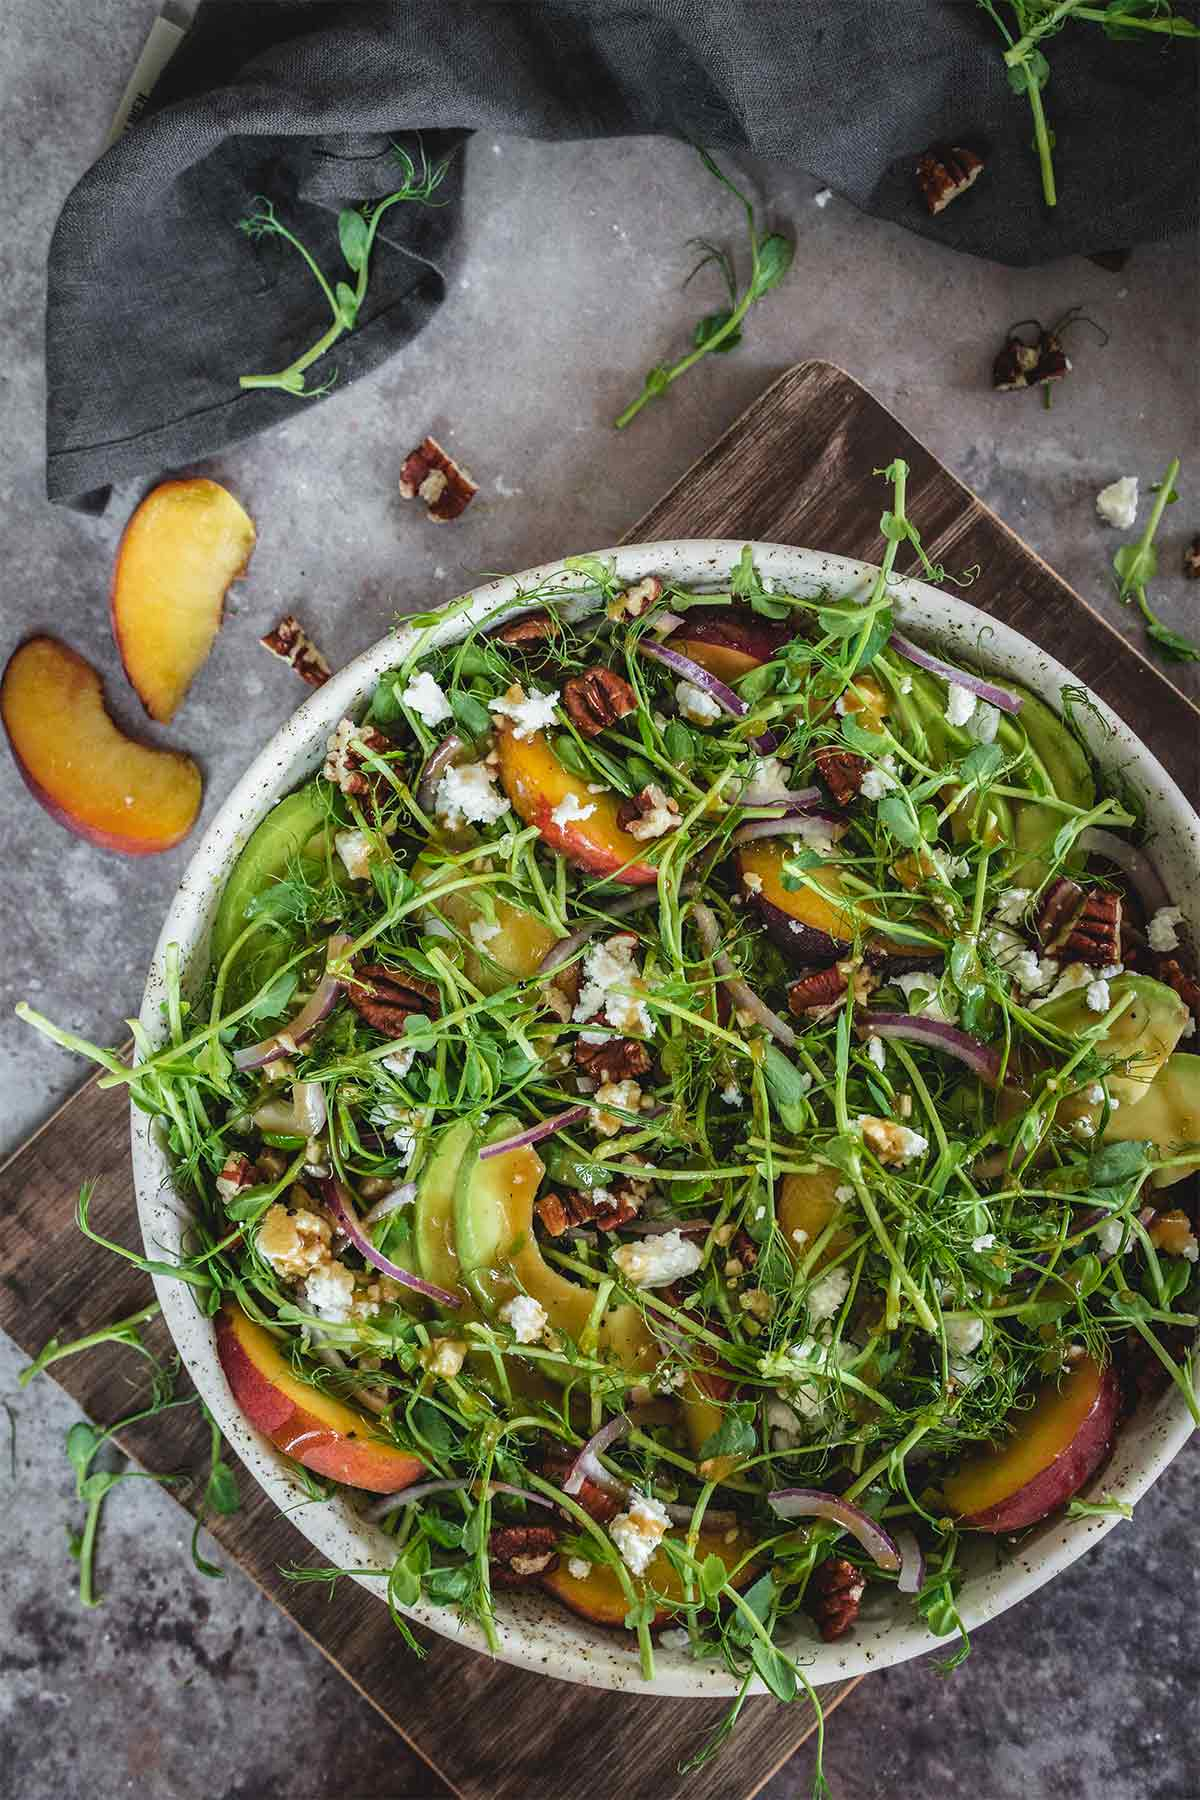 Healthy microgreen salad with peaches and avocado served in a plate